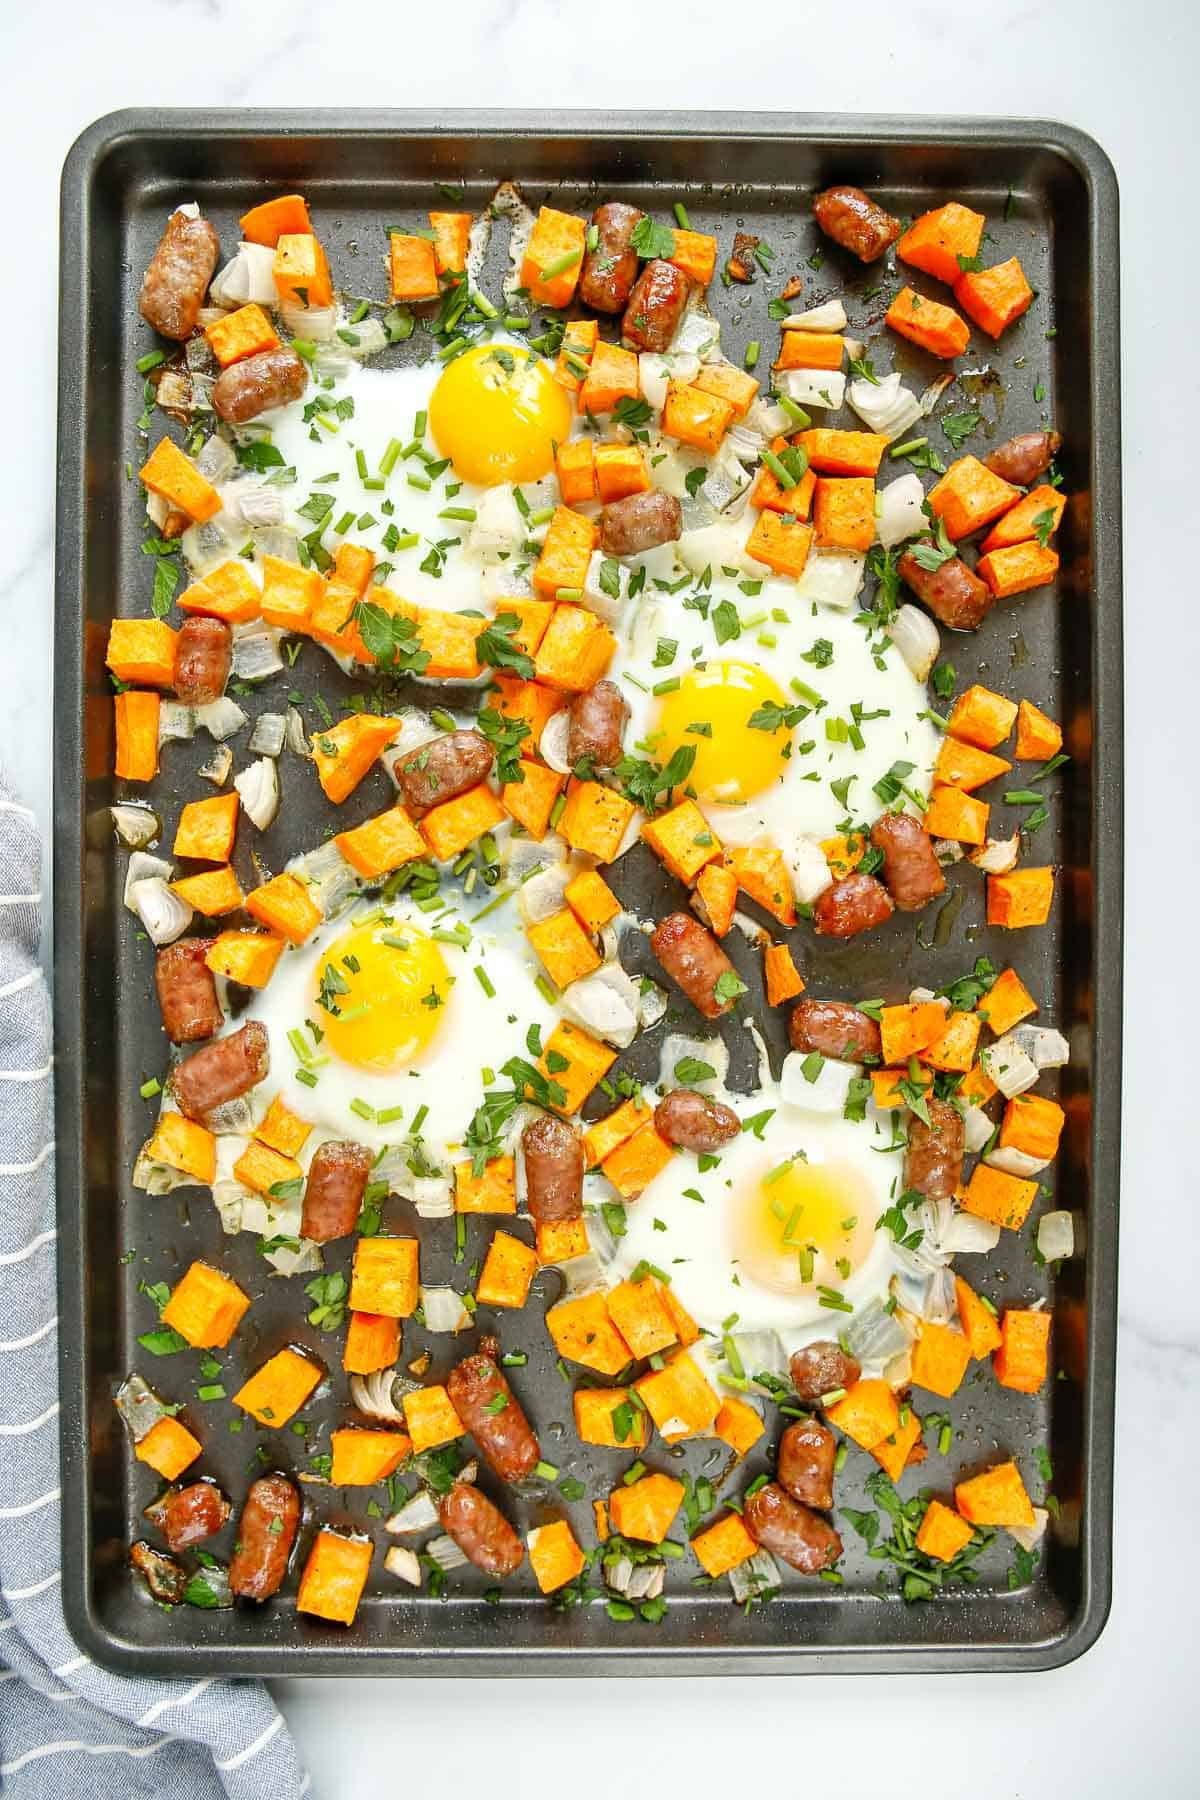 Overhead view of a sheet pan full of breakfast food including eggs.